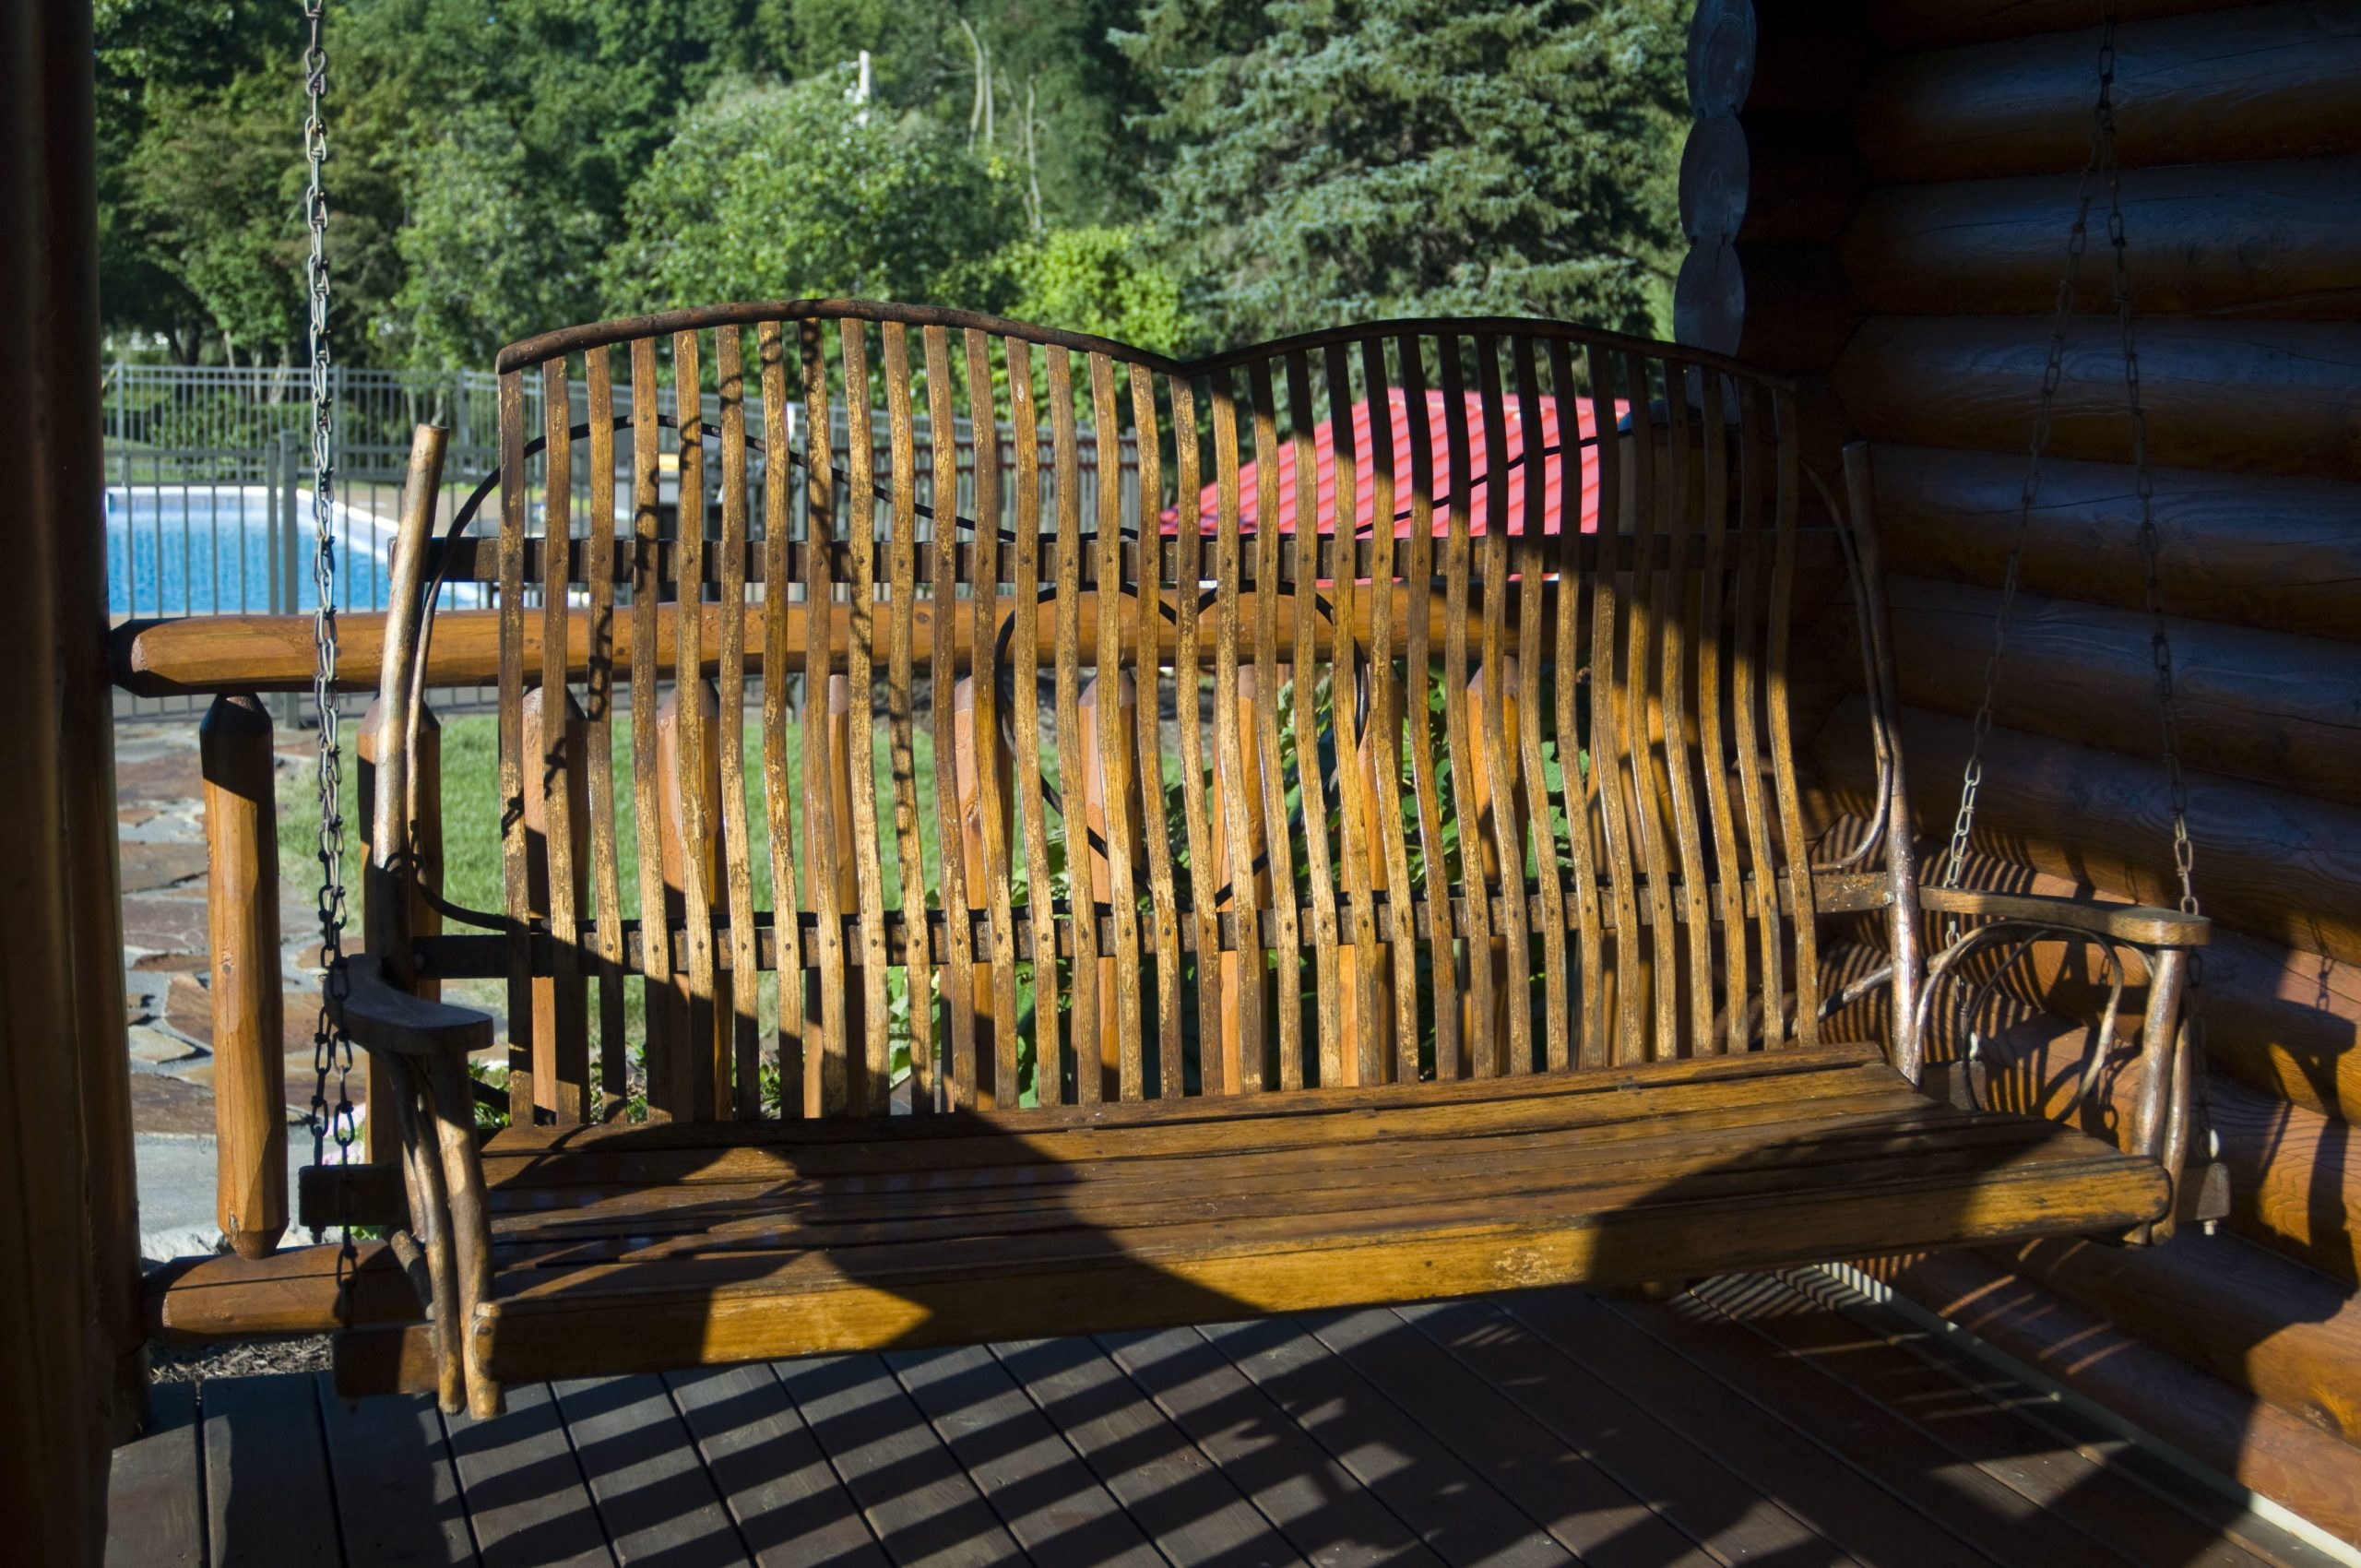 Swing bench on log cabin porch at Silvermist